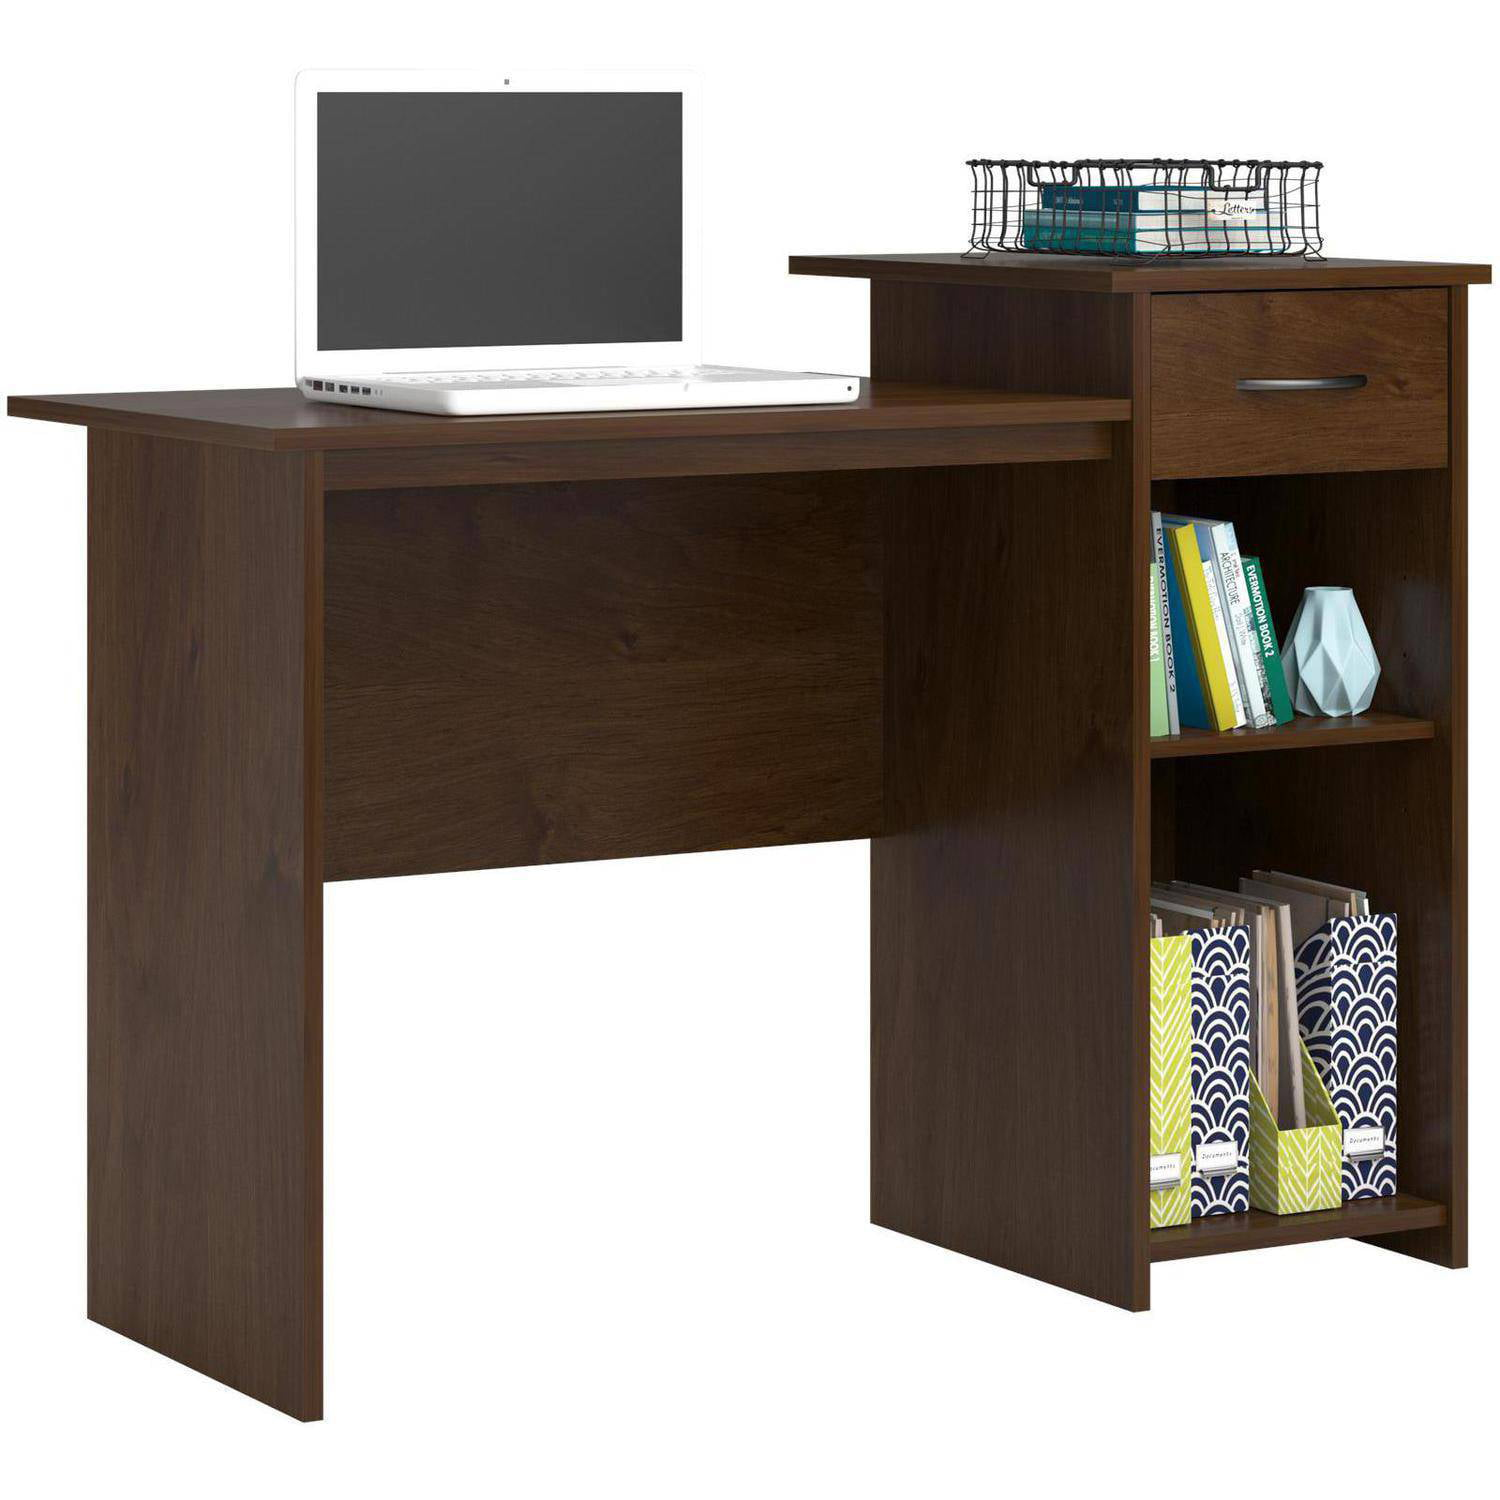 Small space furniture - Office furniture small spaces set ...